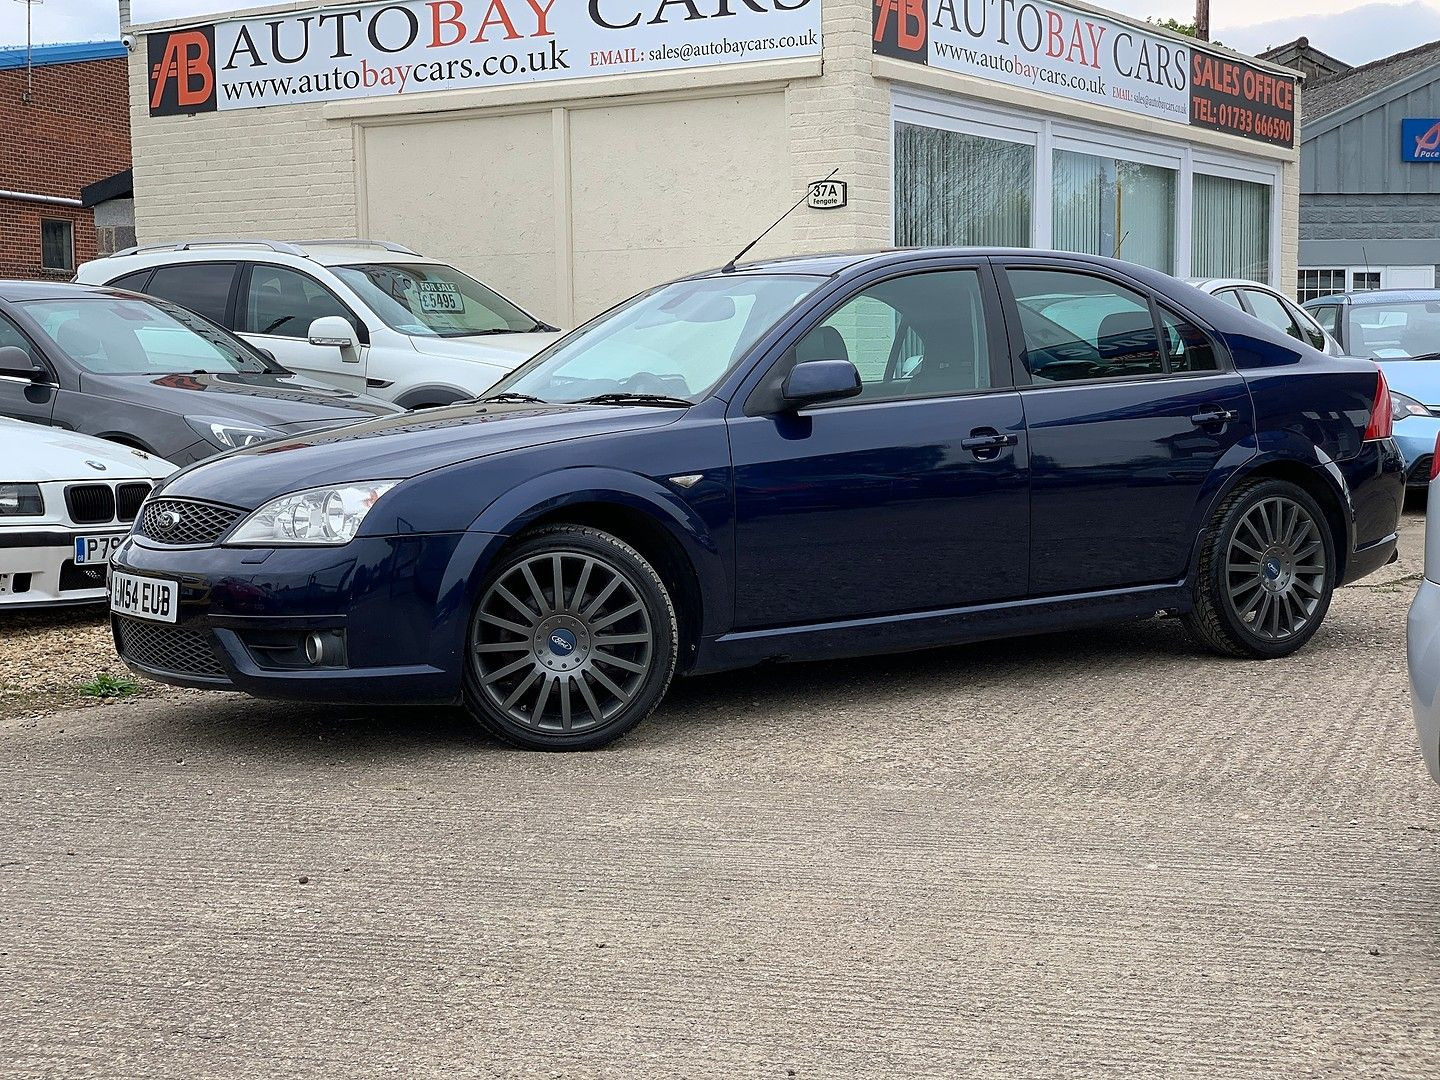 FORDMondeo2.2 TDCi 155 PS ST SIII for sale